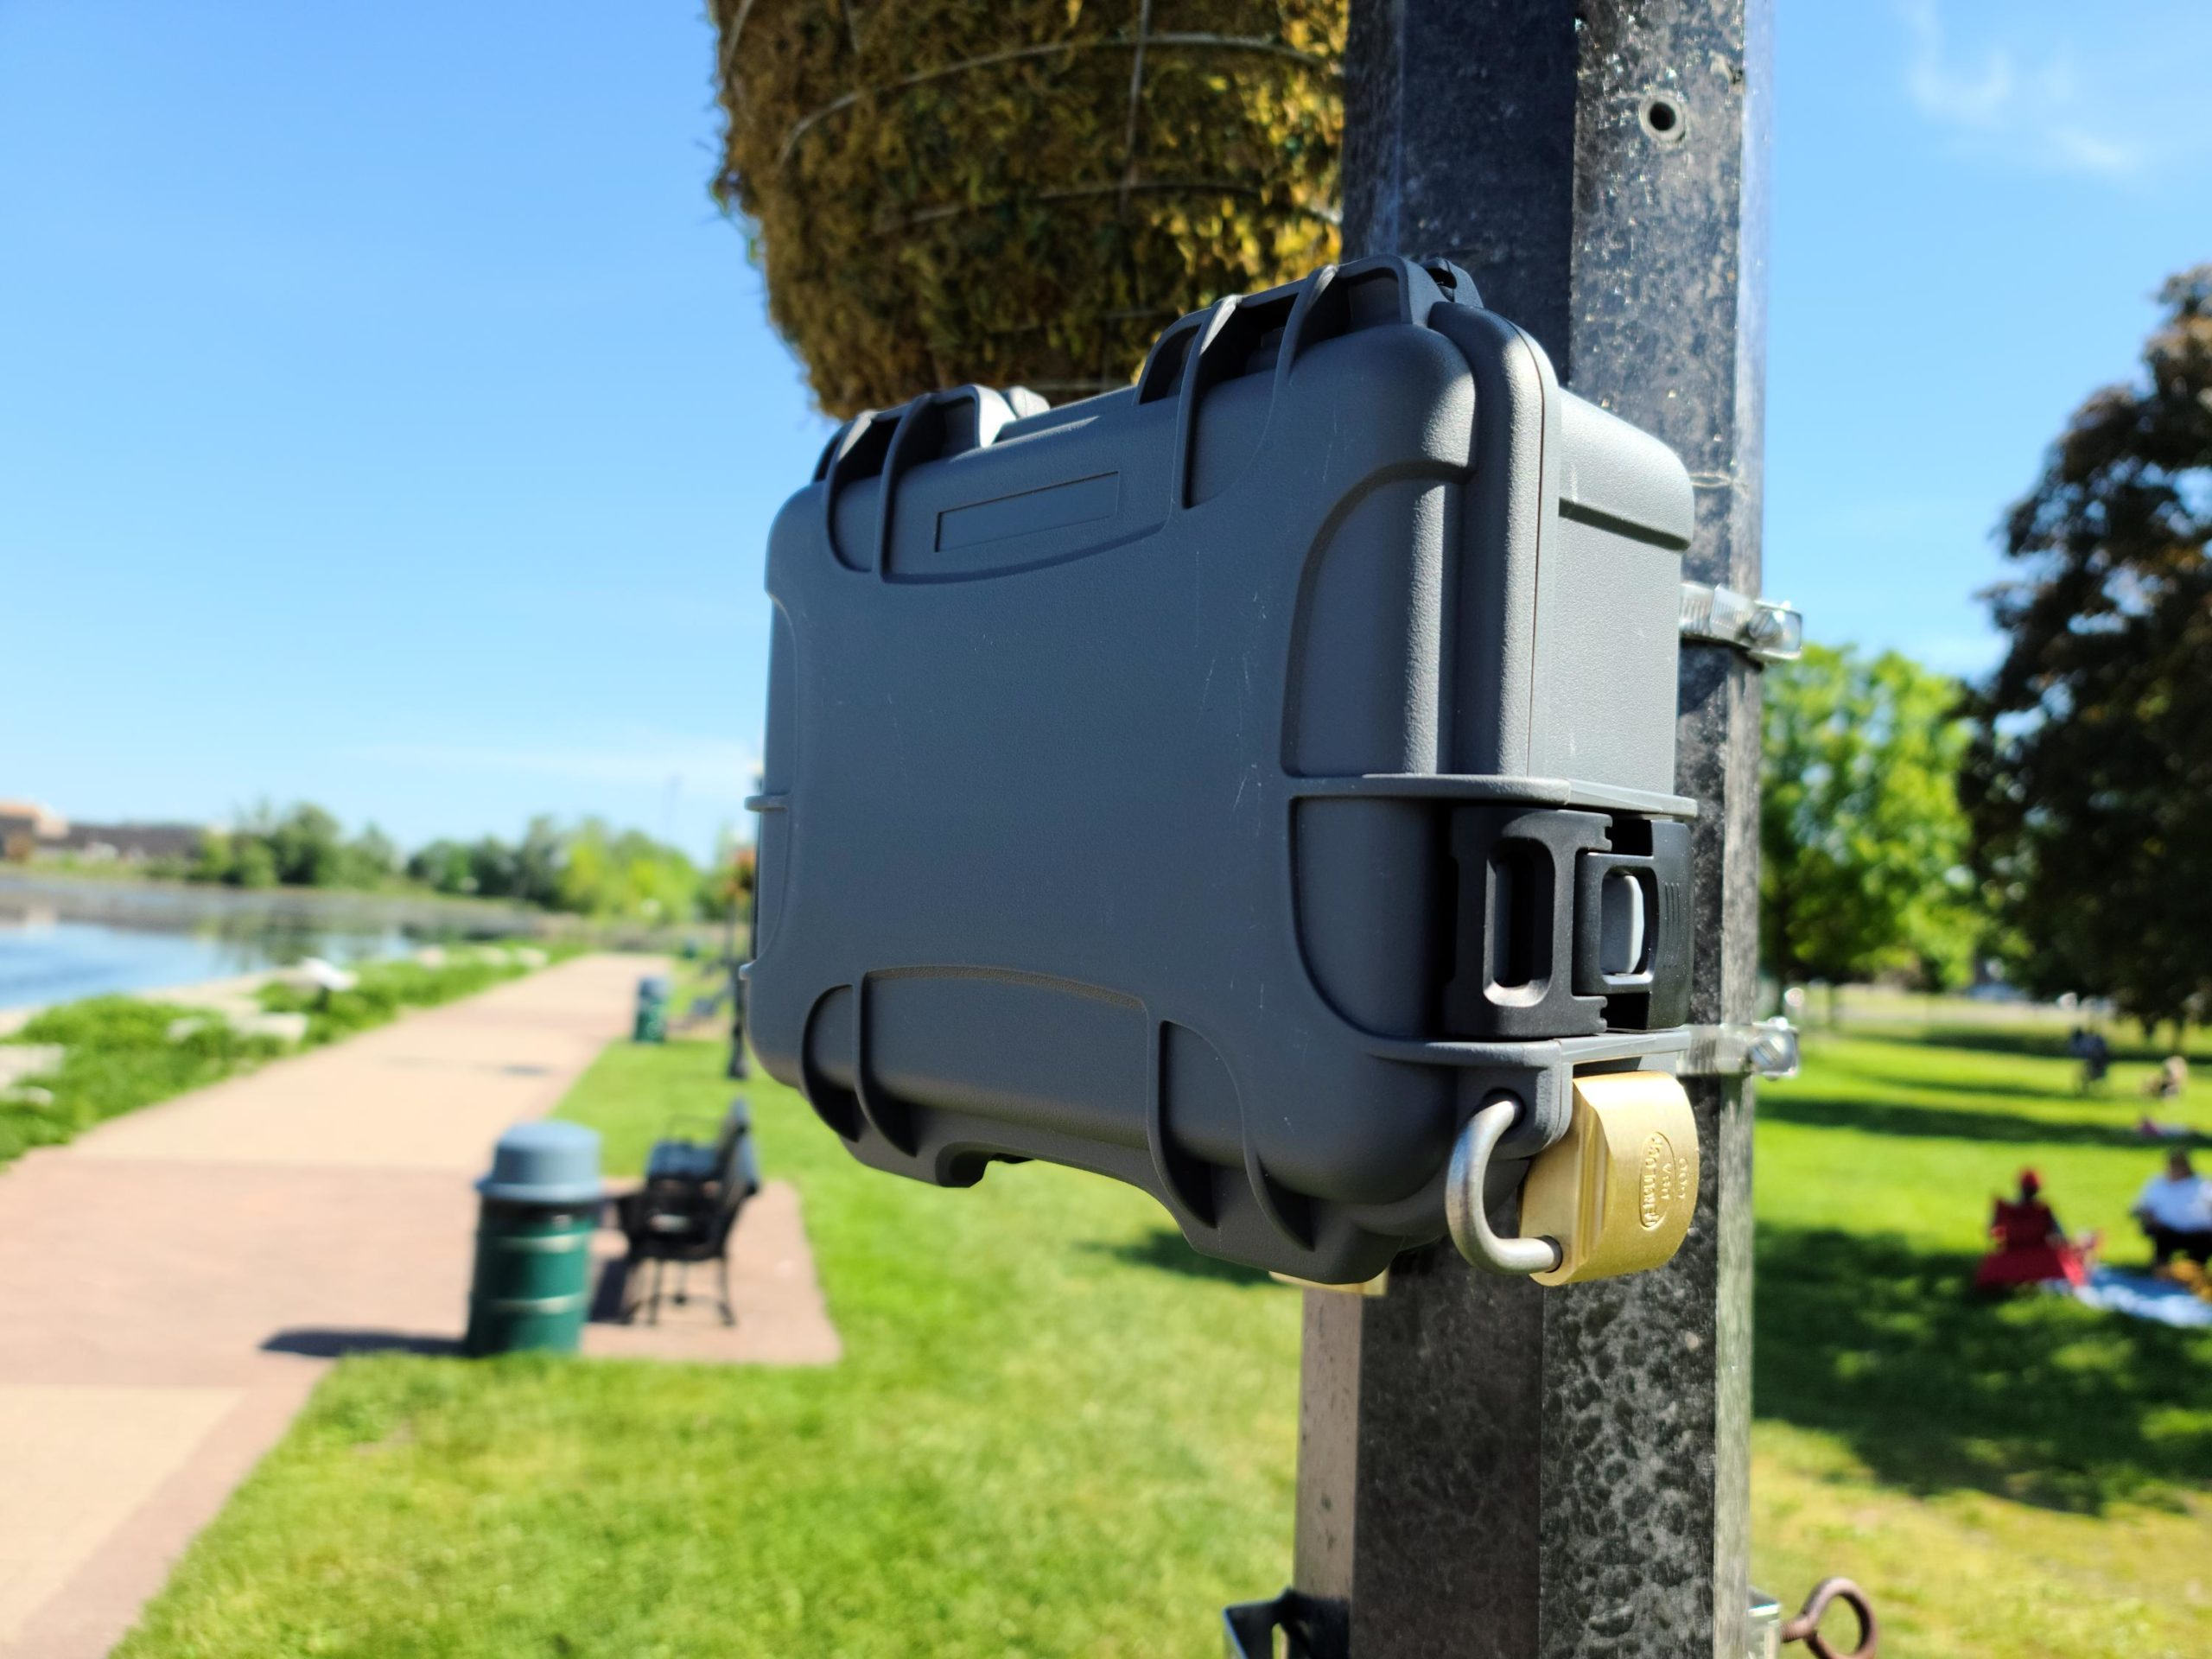 Otter radar secured and locked to utility pole on Old Simcoe Rd., Port Perry, Ontario